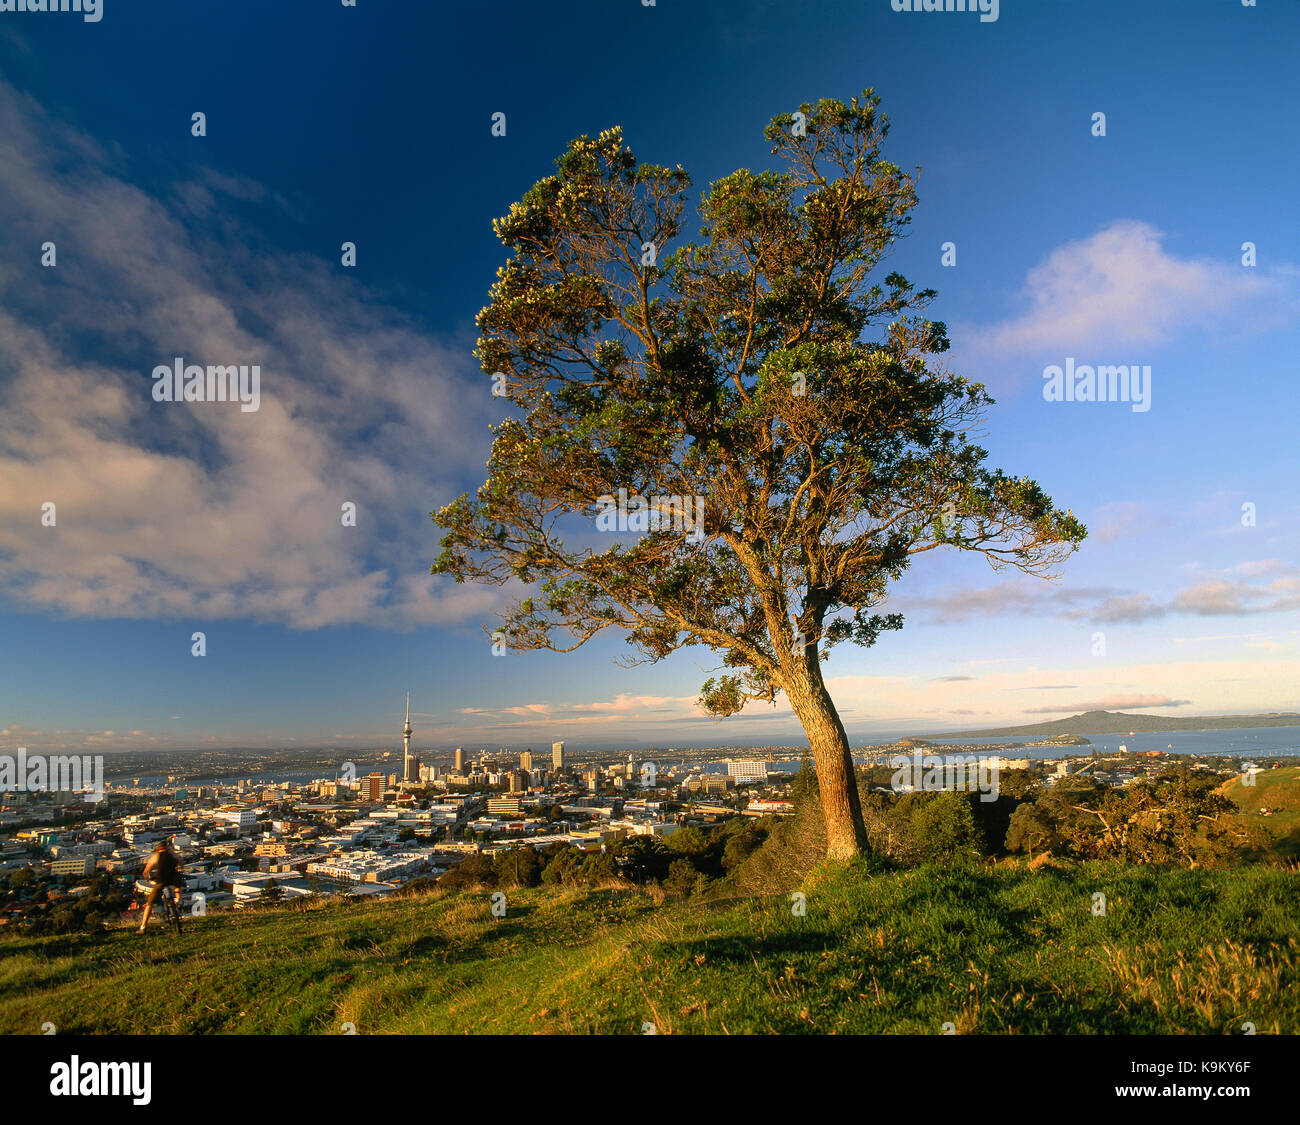 New Zealand. Auckland. High viewpoint of city from Mount Eden with tree. - Stock Image